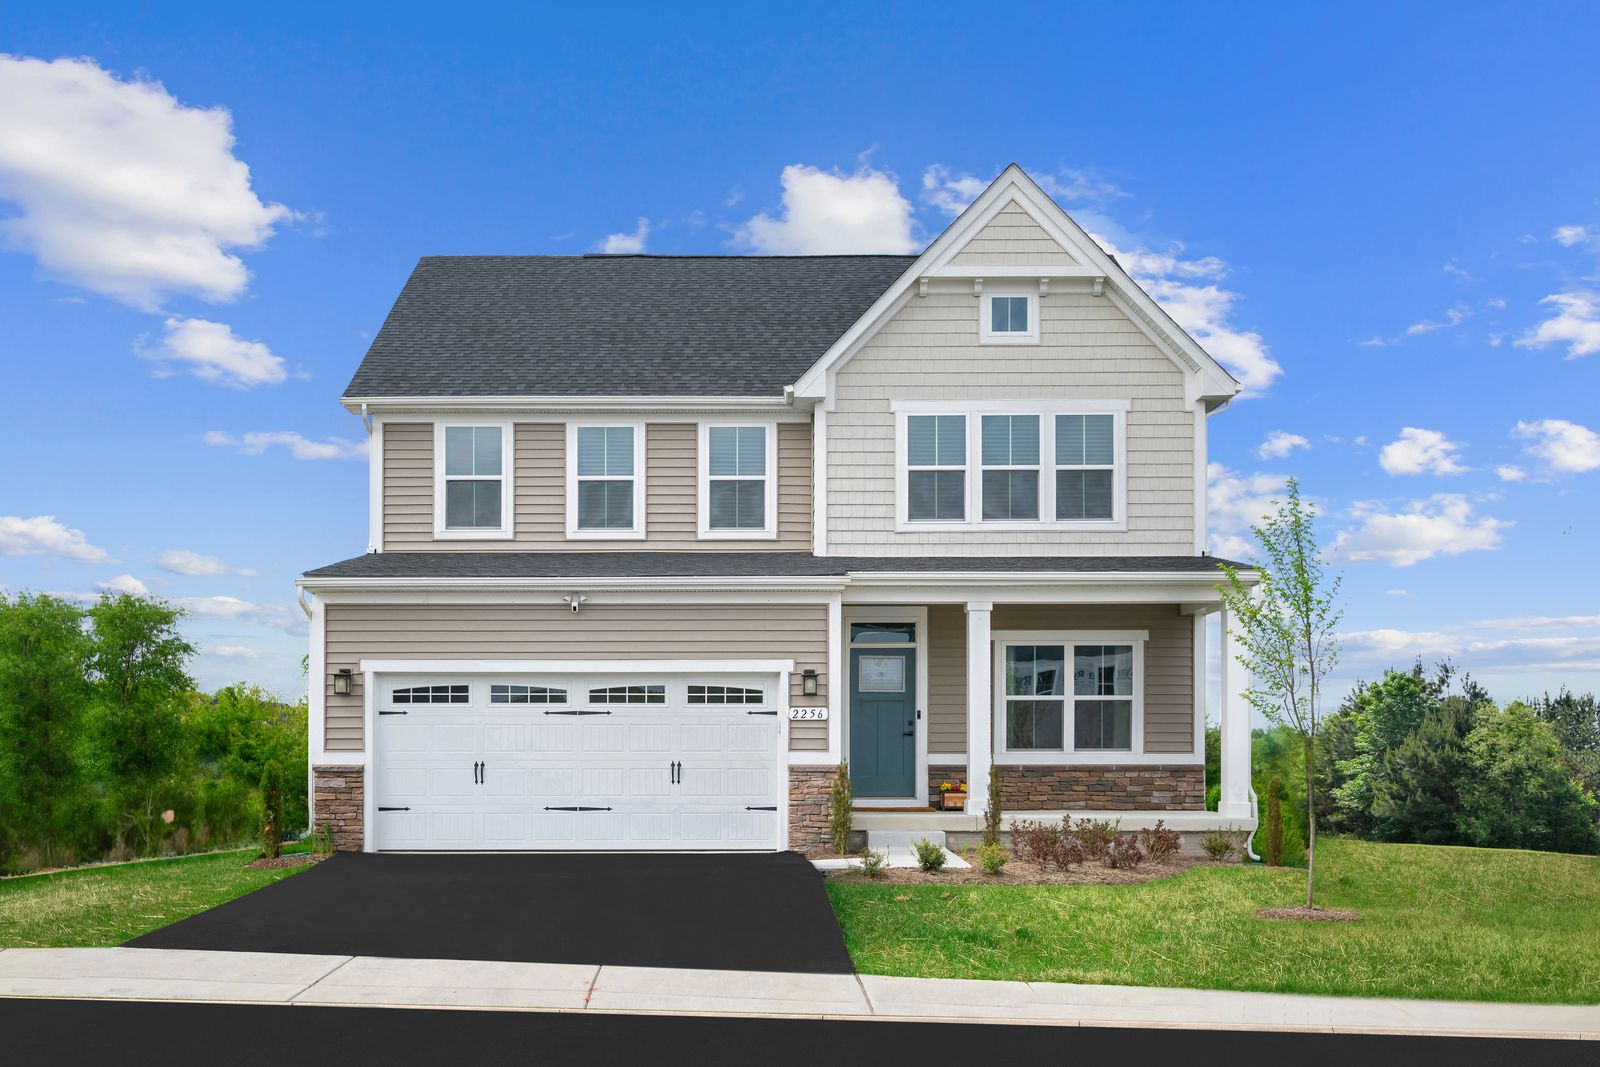 Columbia Plan At Ballenger Run Single Family Homes In Frederick Md By Ryan Homes